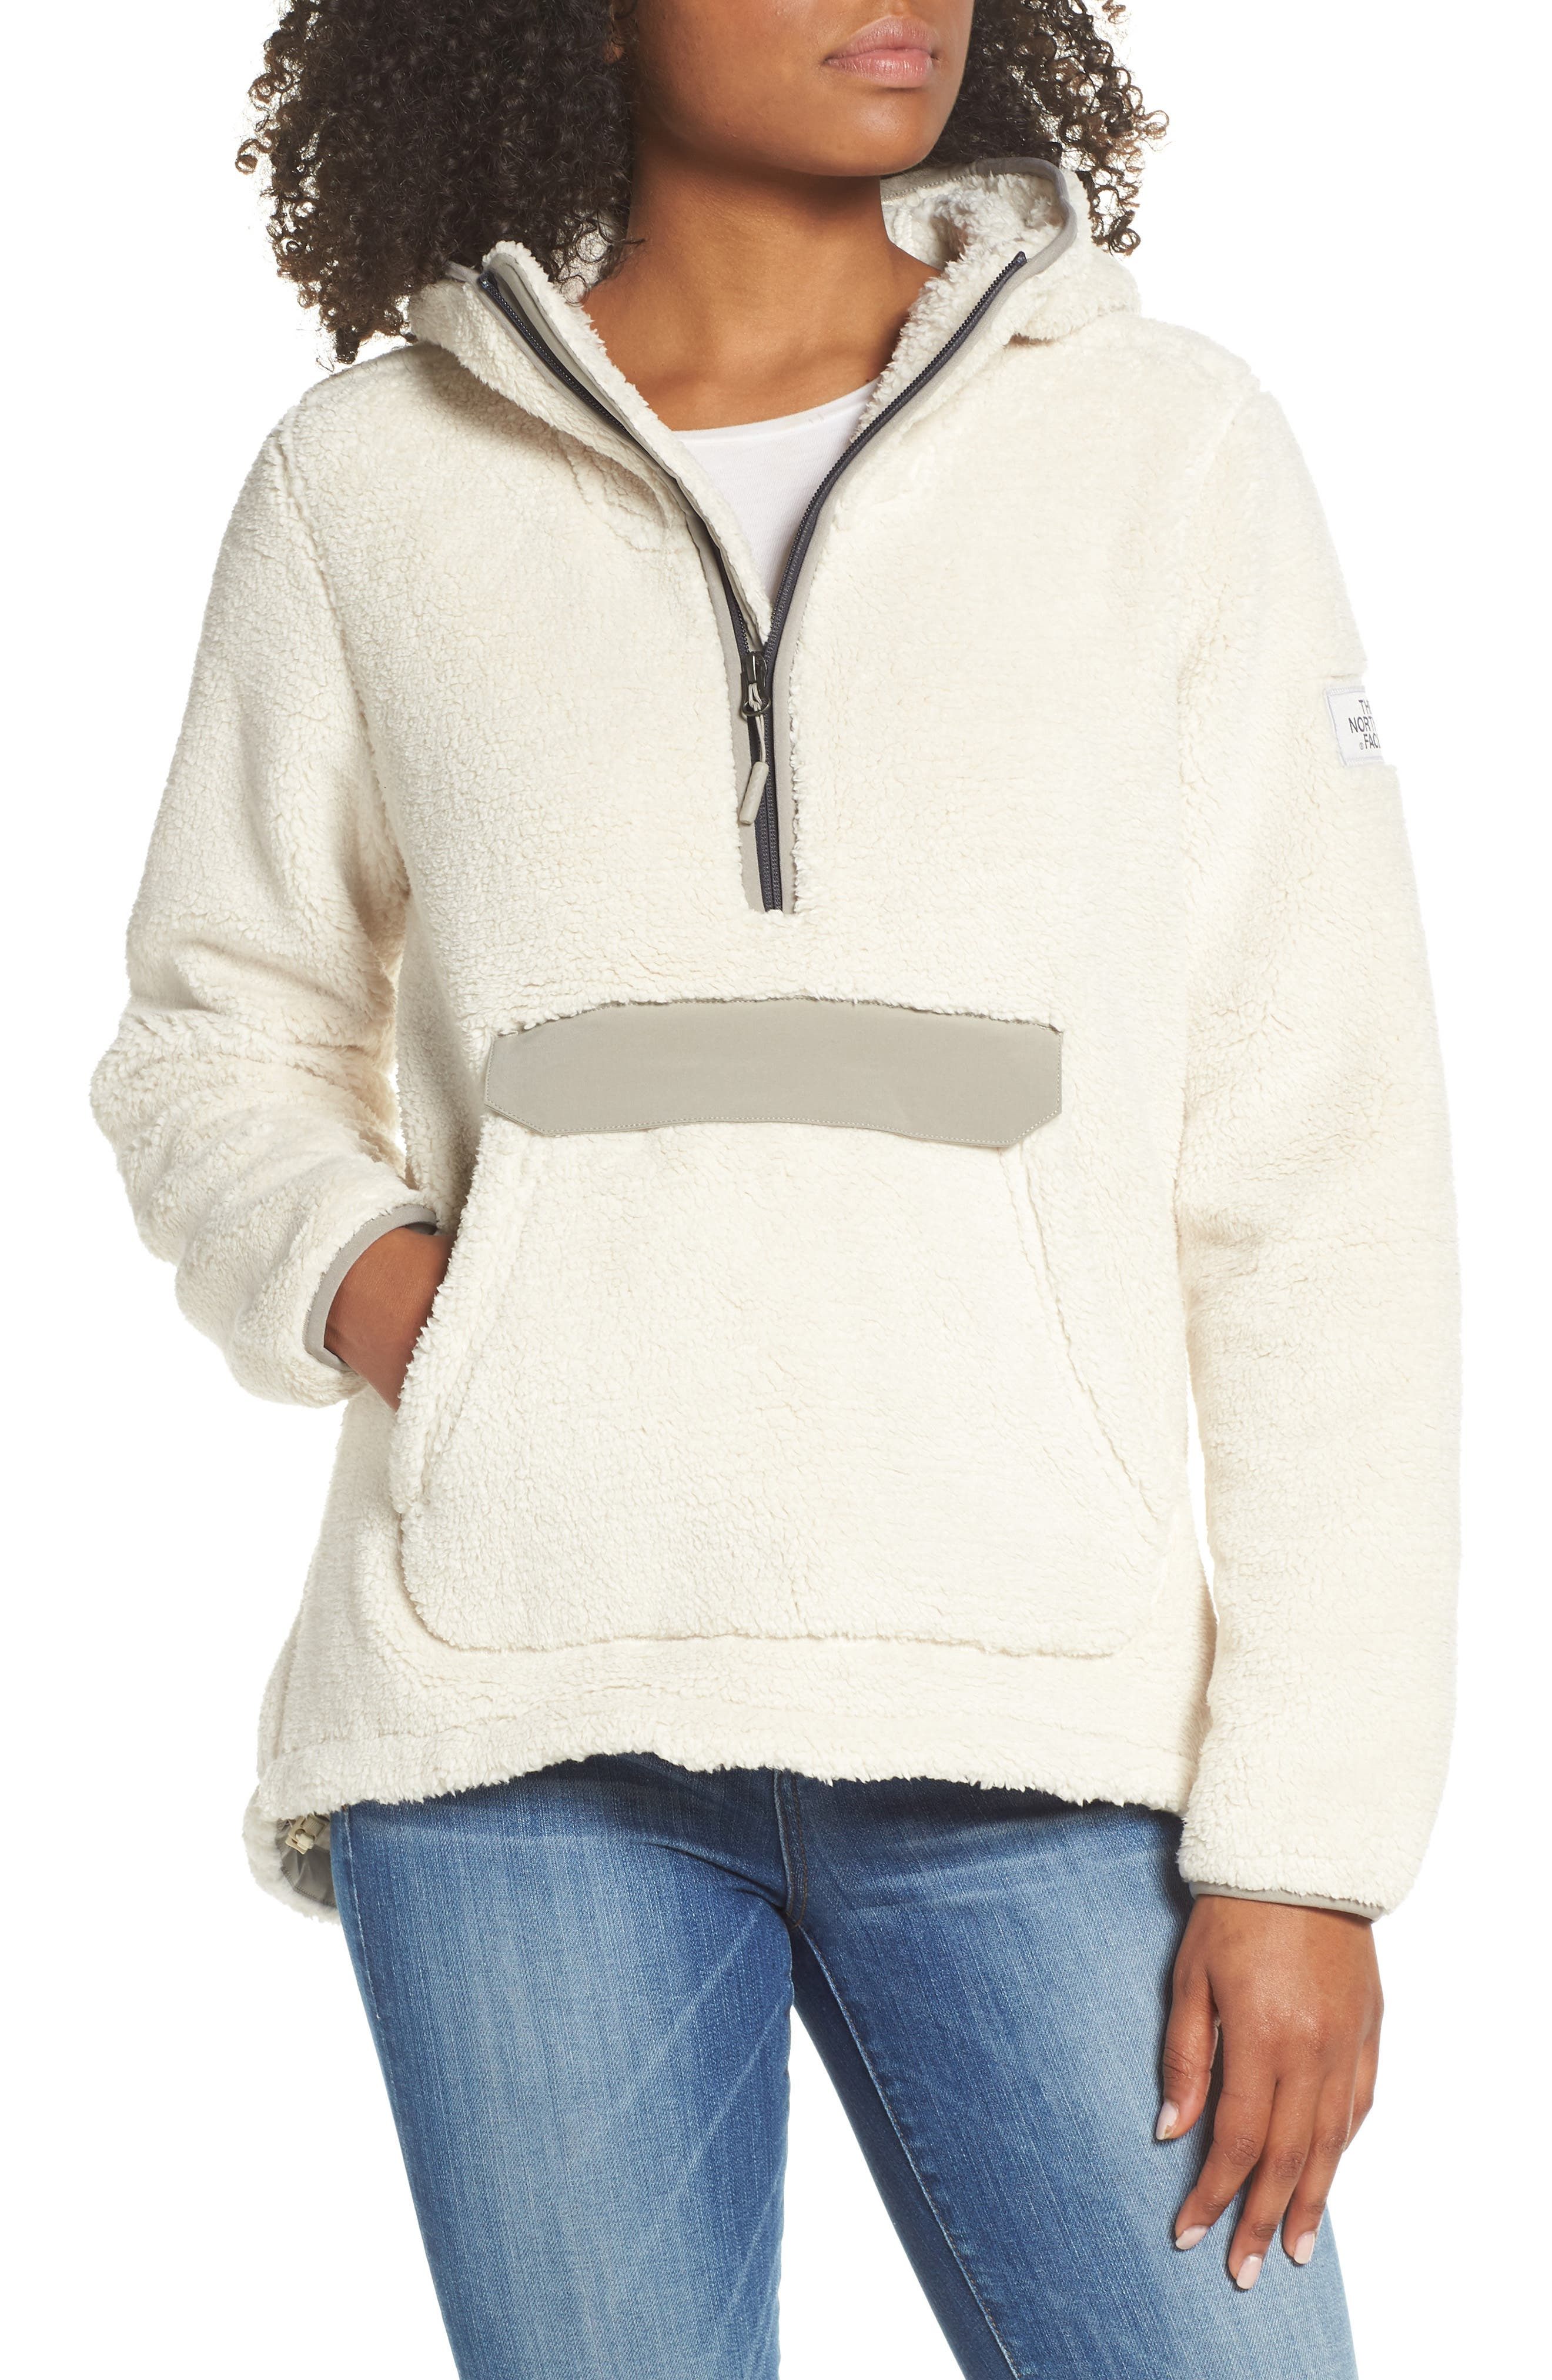 THE NORTH FACE, Campshire High Pile Fleece Pullover Hoodie, Main thumbnail 1, color, VINTAGE WHITE/ GREY